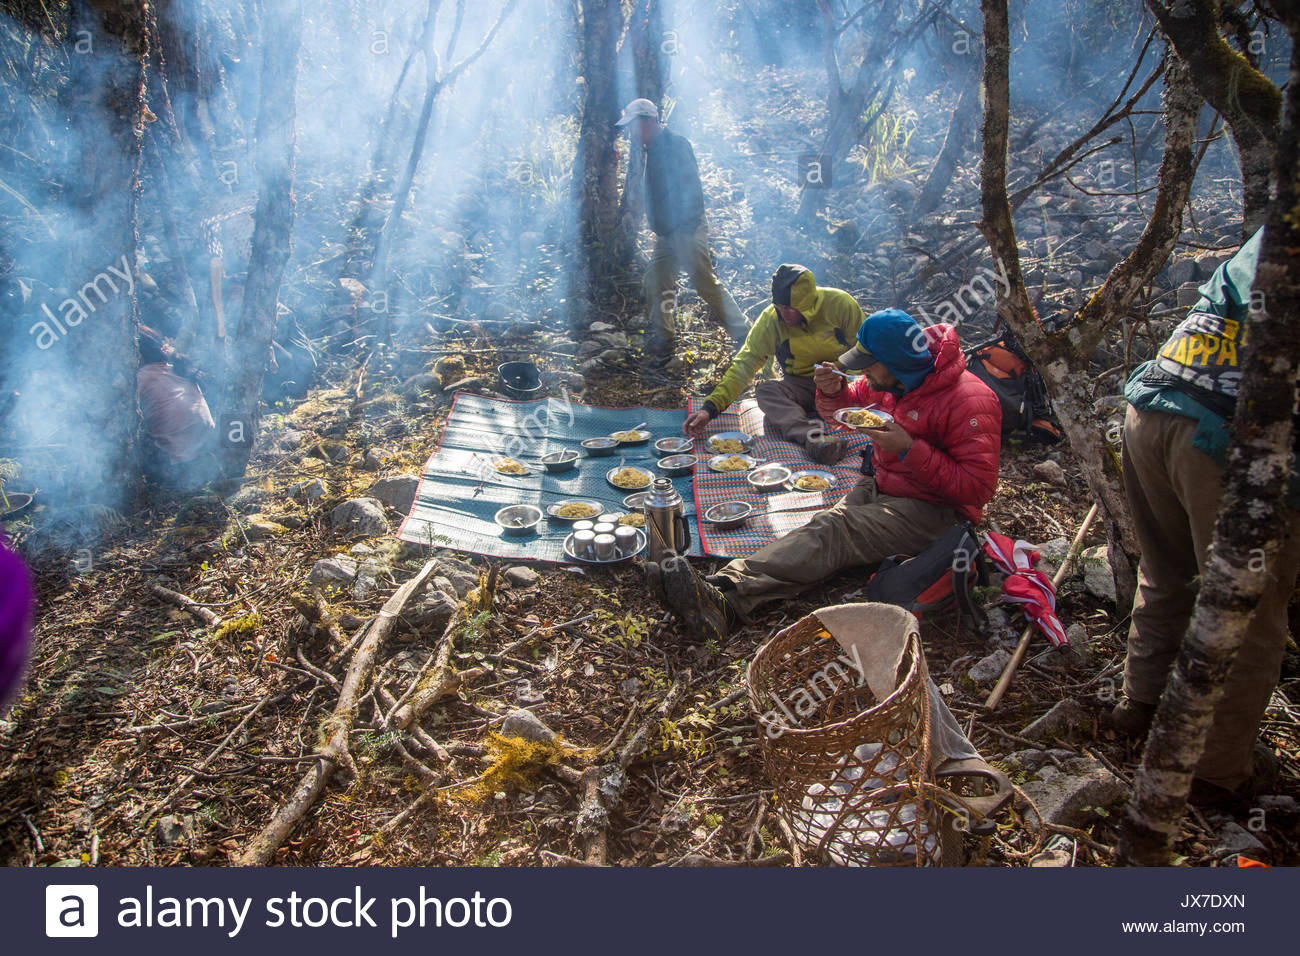 Two expedition members eat a meal while others busy themselves around the campsite. - Stock Image